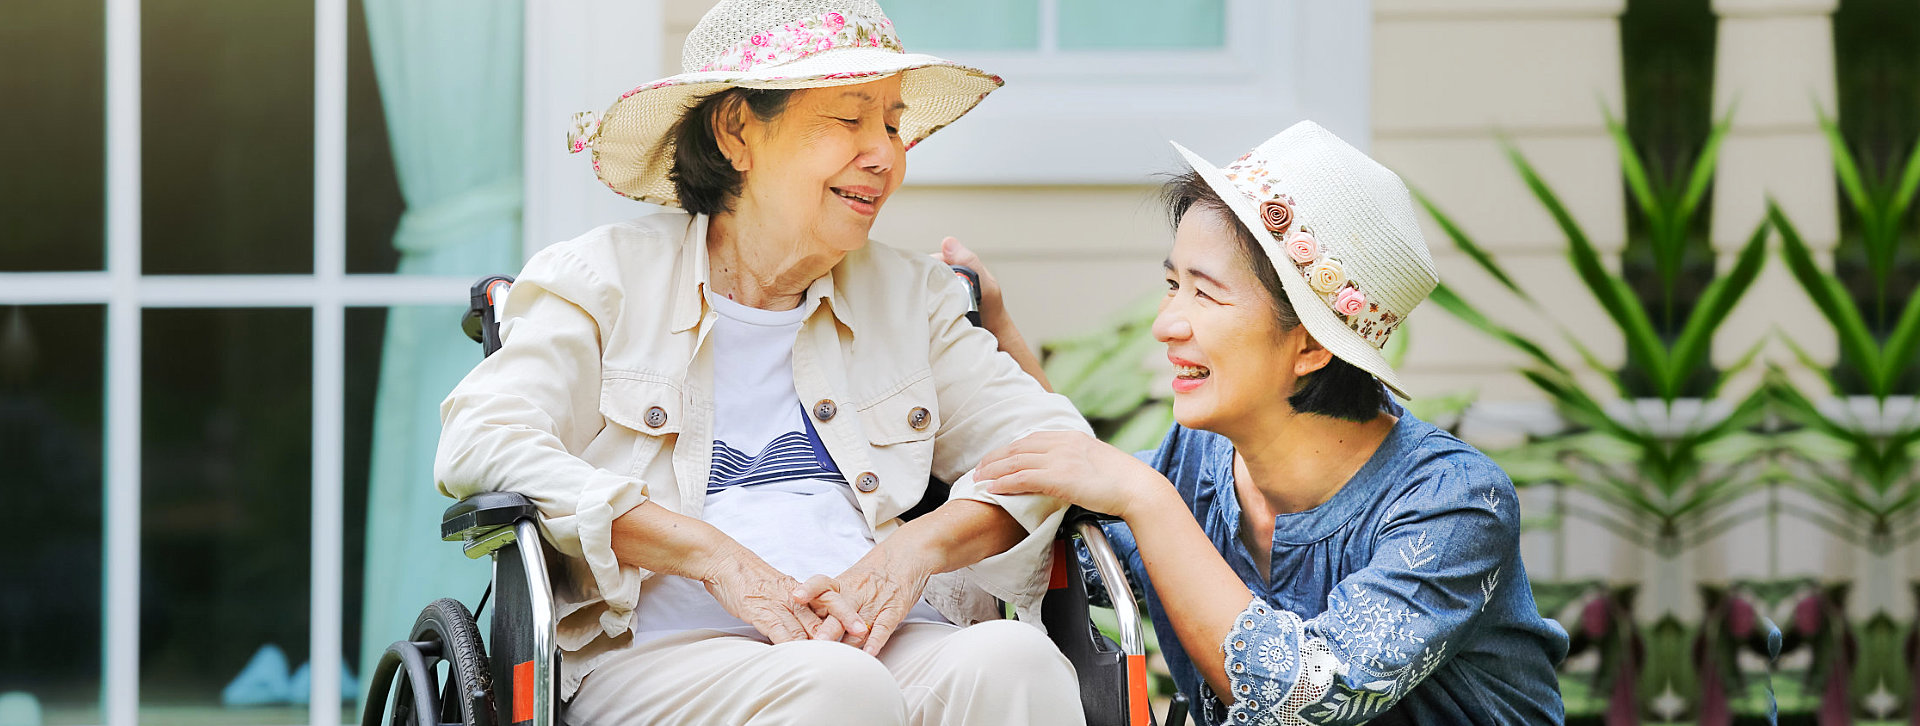 caregiver and senior woman in wheelchair smiling